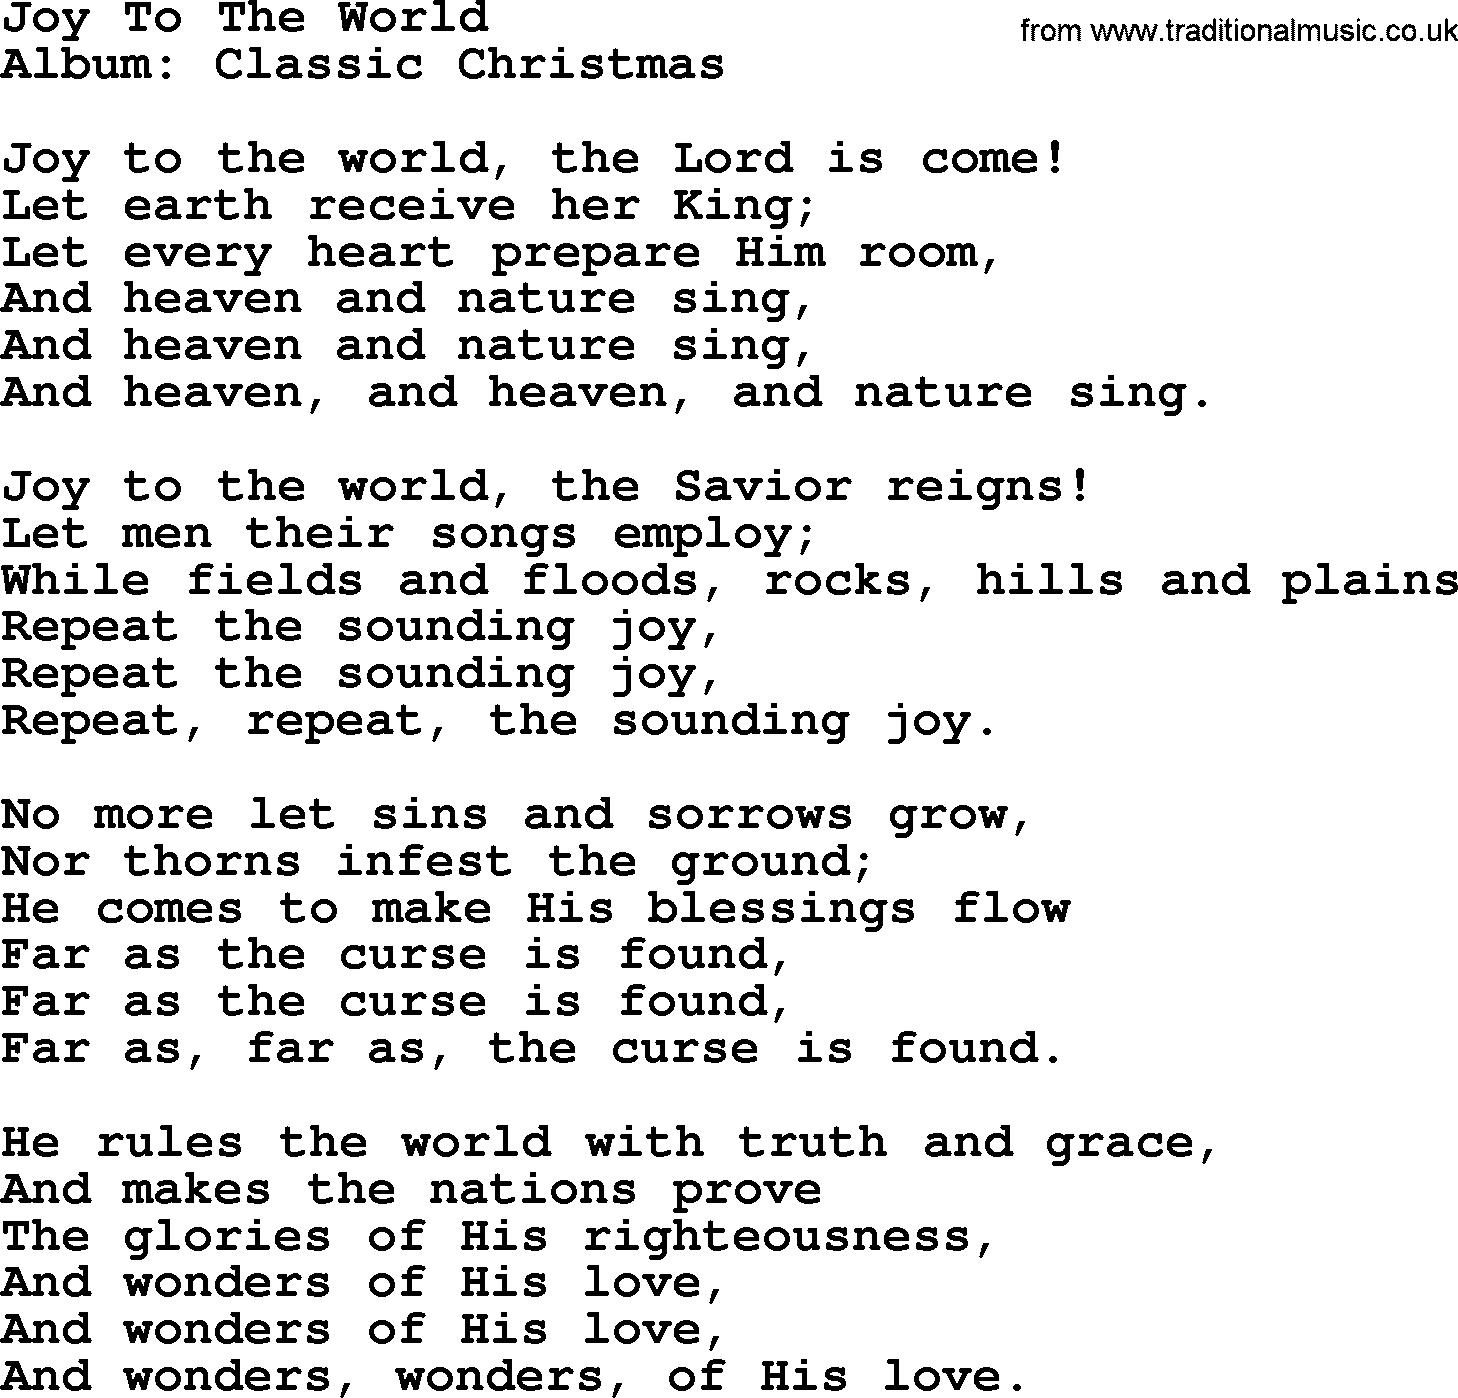 Joy To The World, by George Strait - lyrics